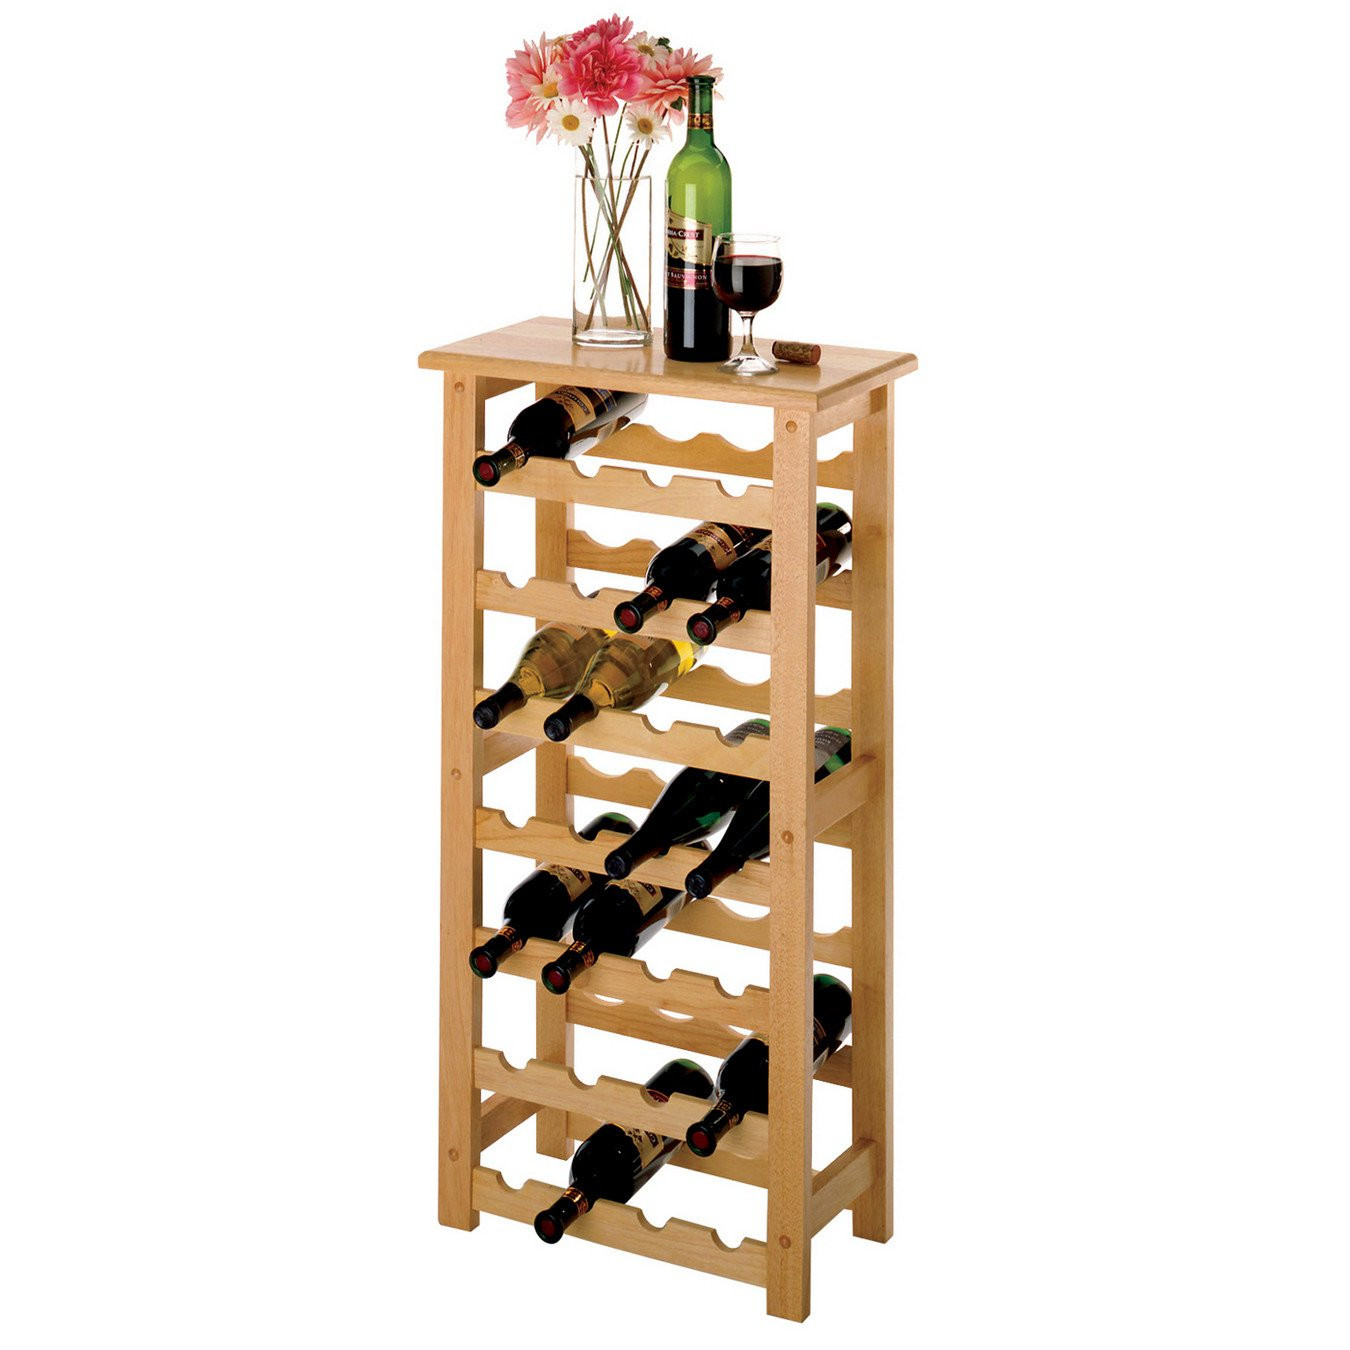 Suction Cup Window Vase Of Https Casagear Com Daily Https Casagear Com Products 1 5 Electric Throughout Impressive Piece Of 28 Bottle Wine Rack 60 V1479840806